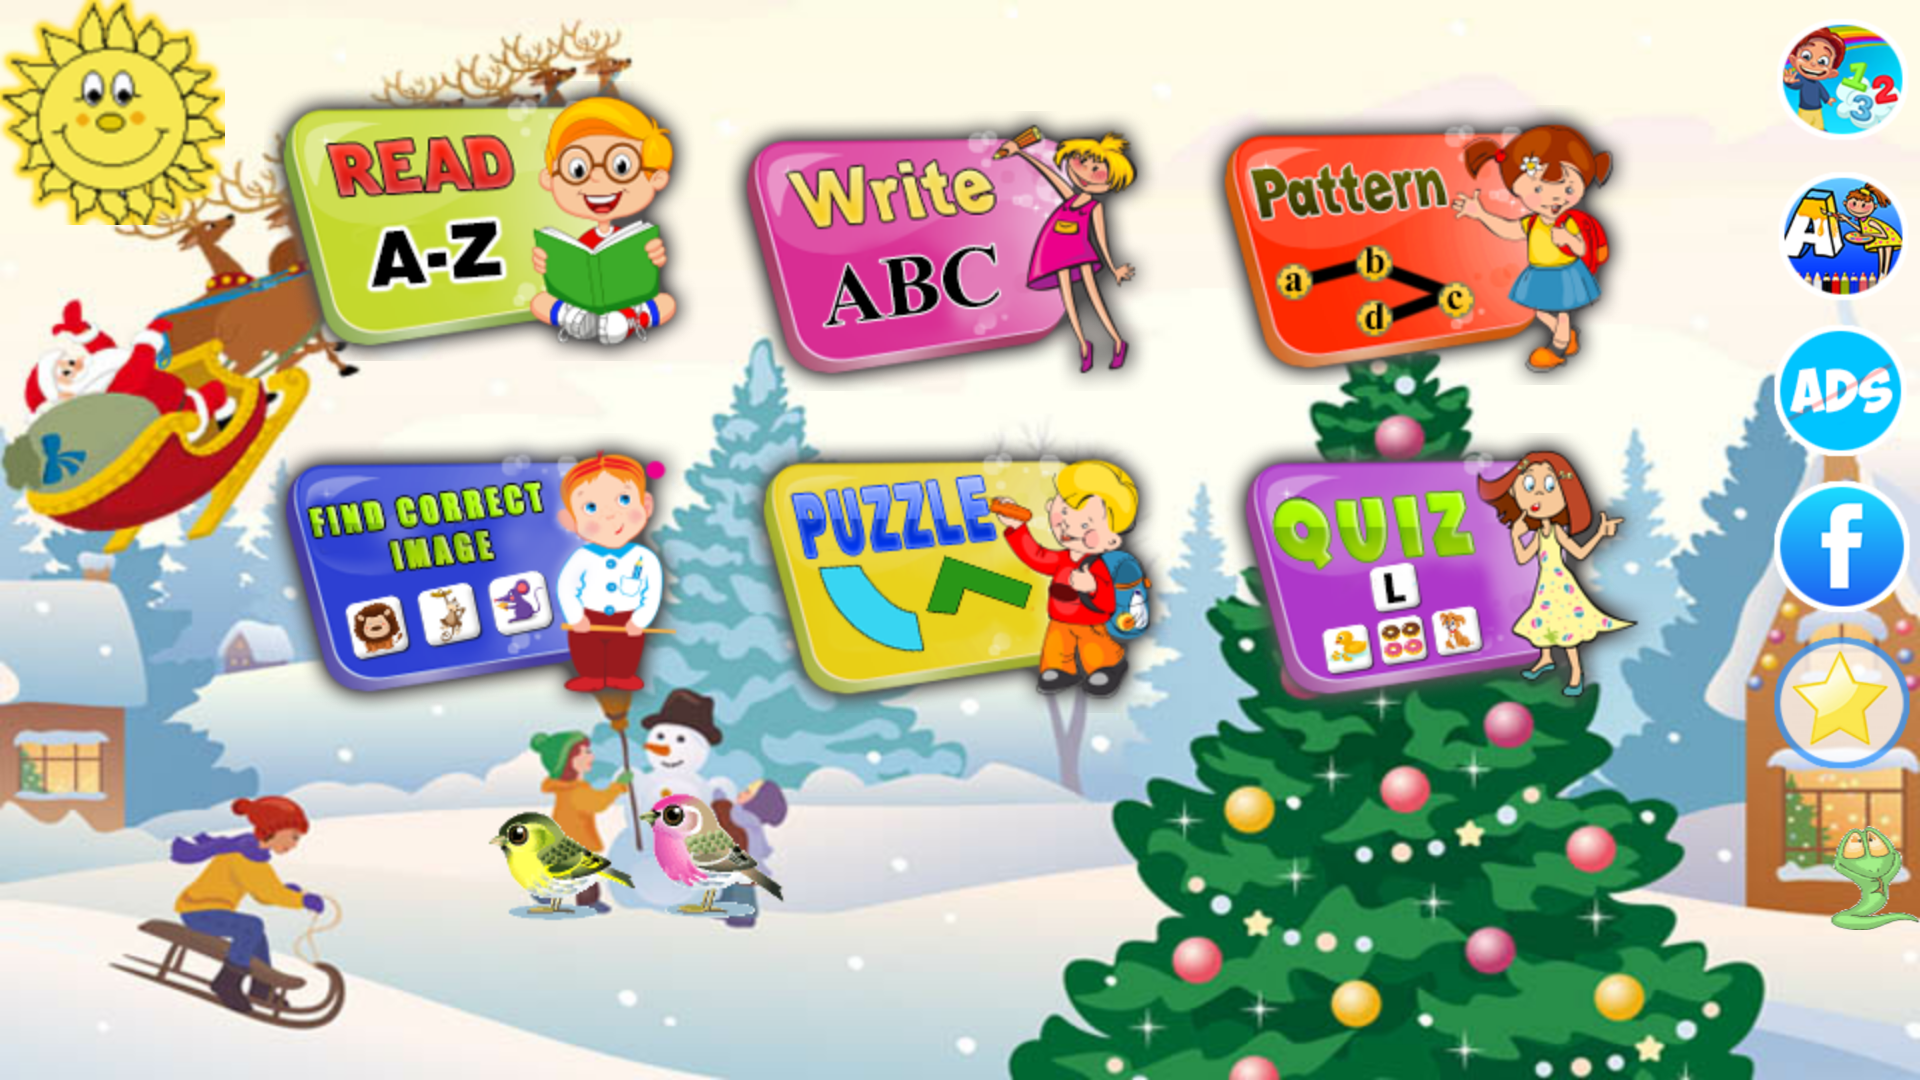 ABC Learning Games for Kids Google Play Store revenue &